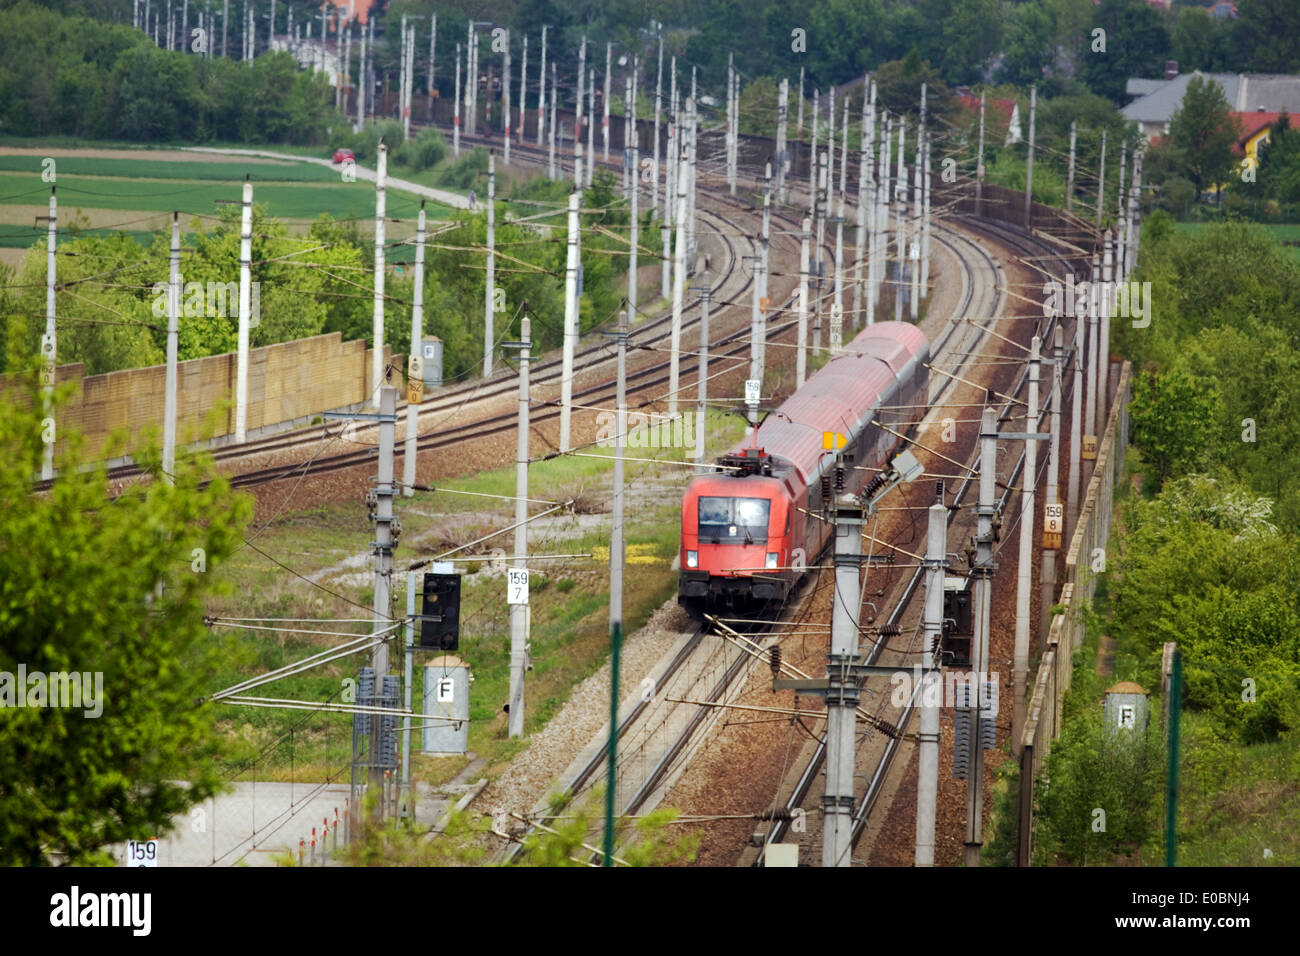 A train for people goes on railroad tracks, Ein Zug fuer Personen faehrt auf Eisenbahnschienen Stock Photo